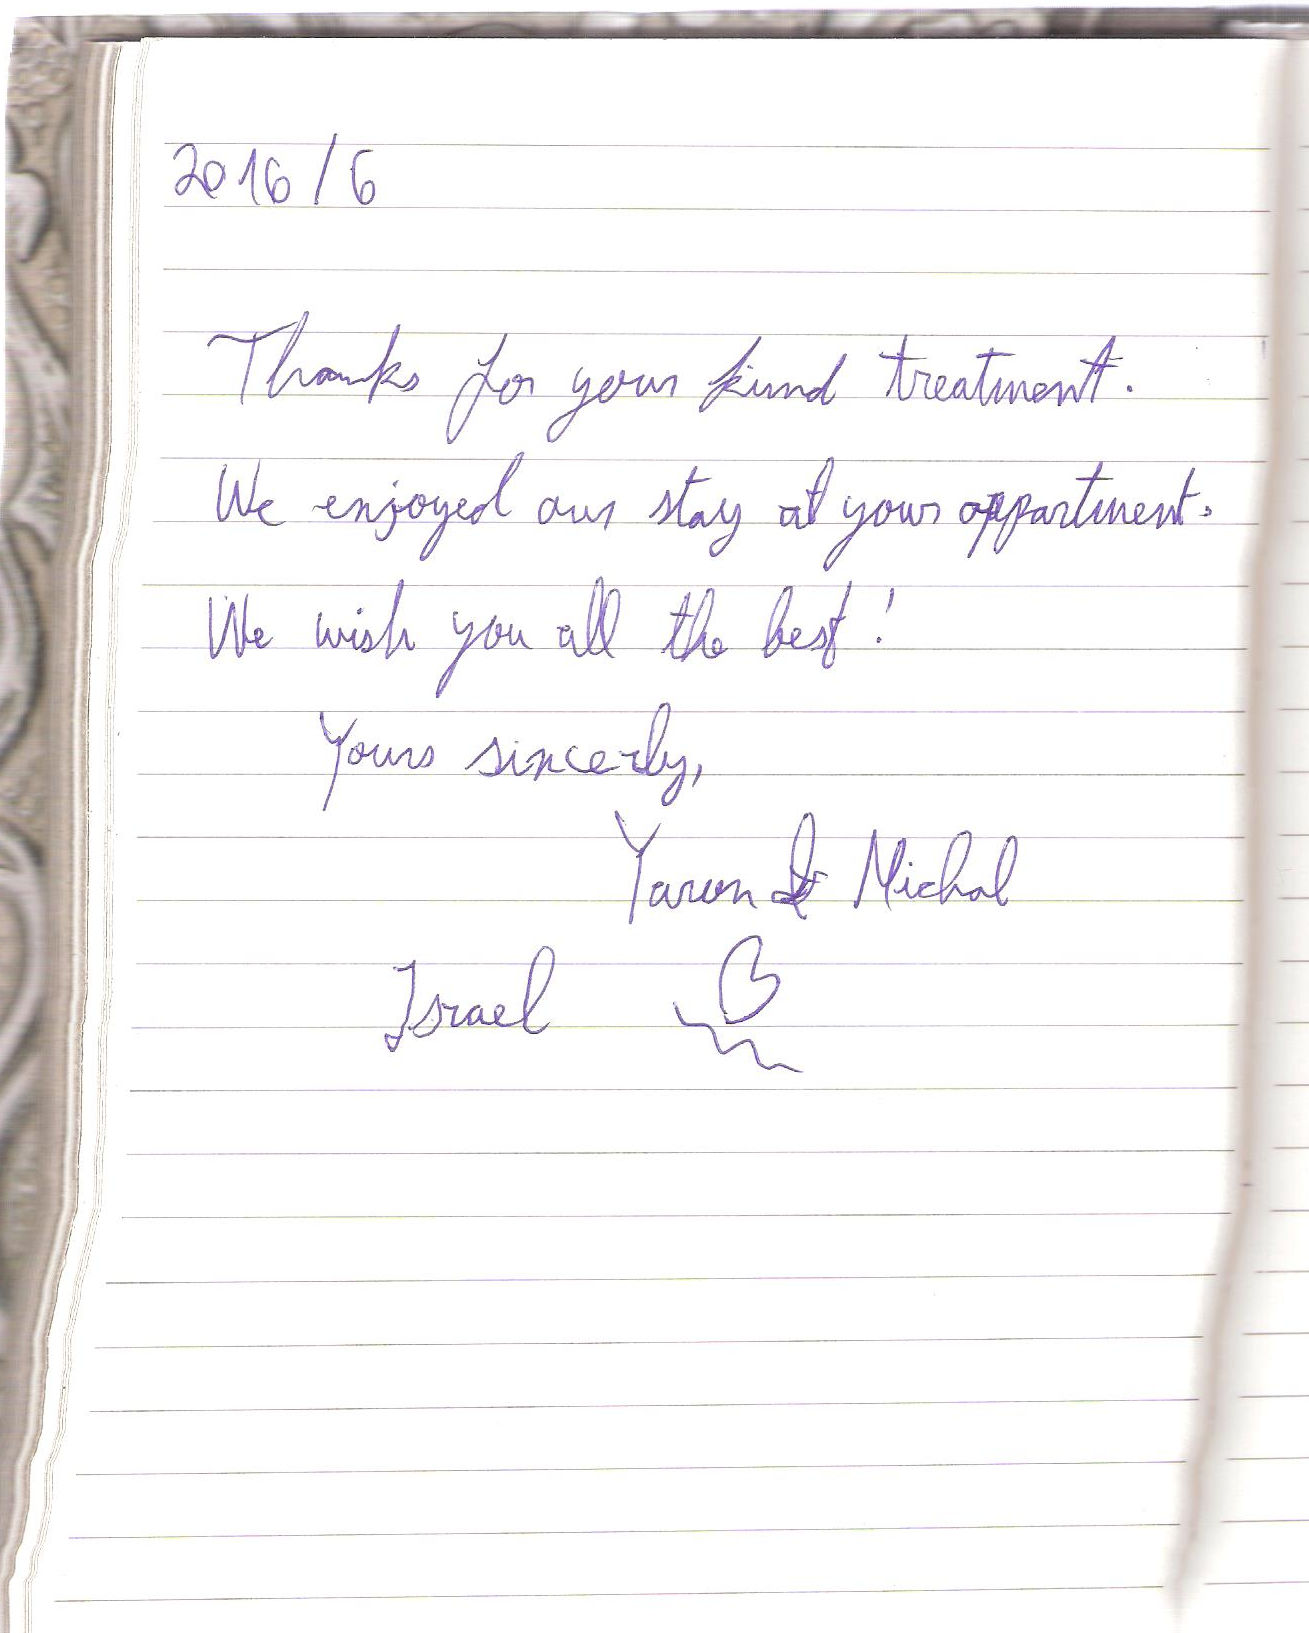 guestbook-page-054